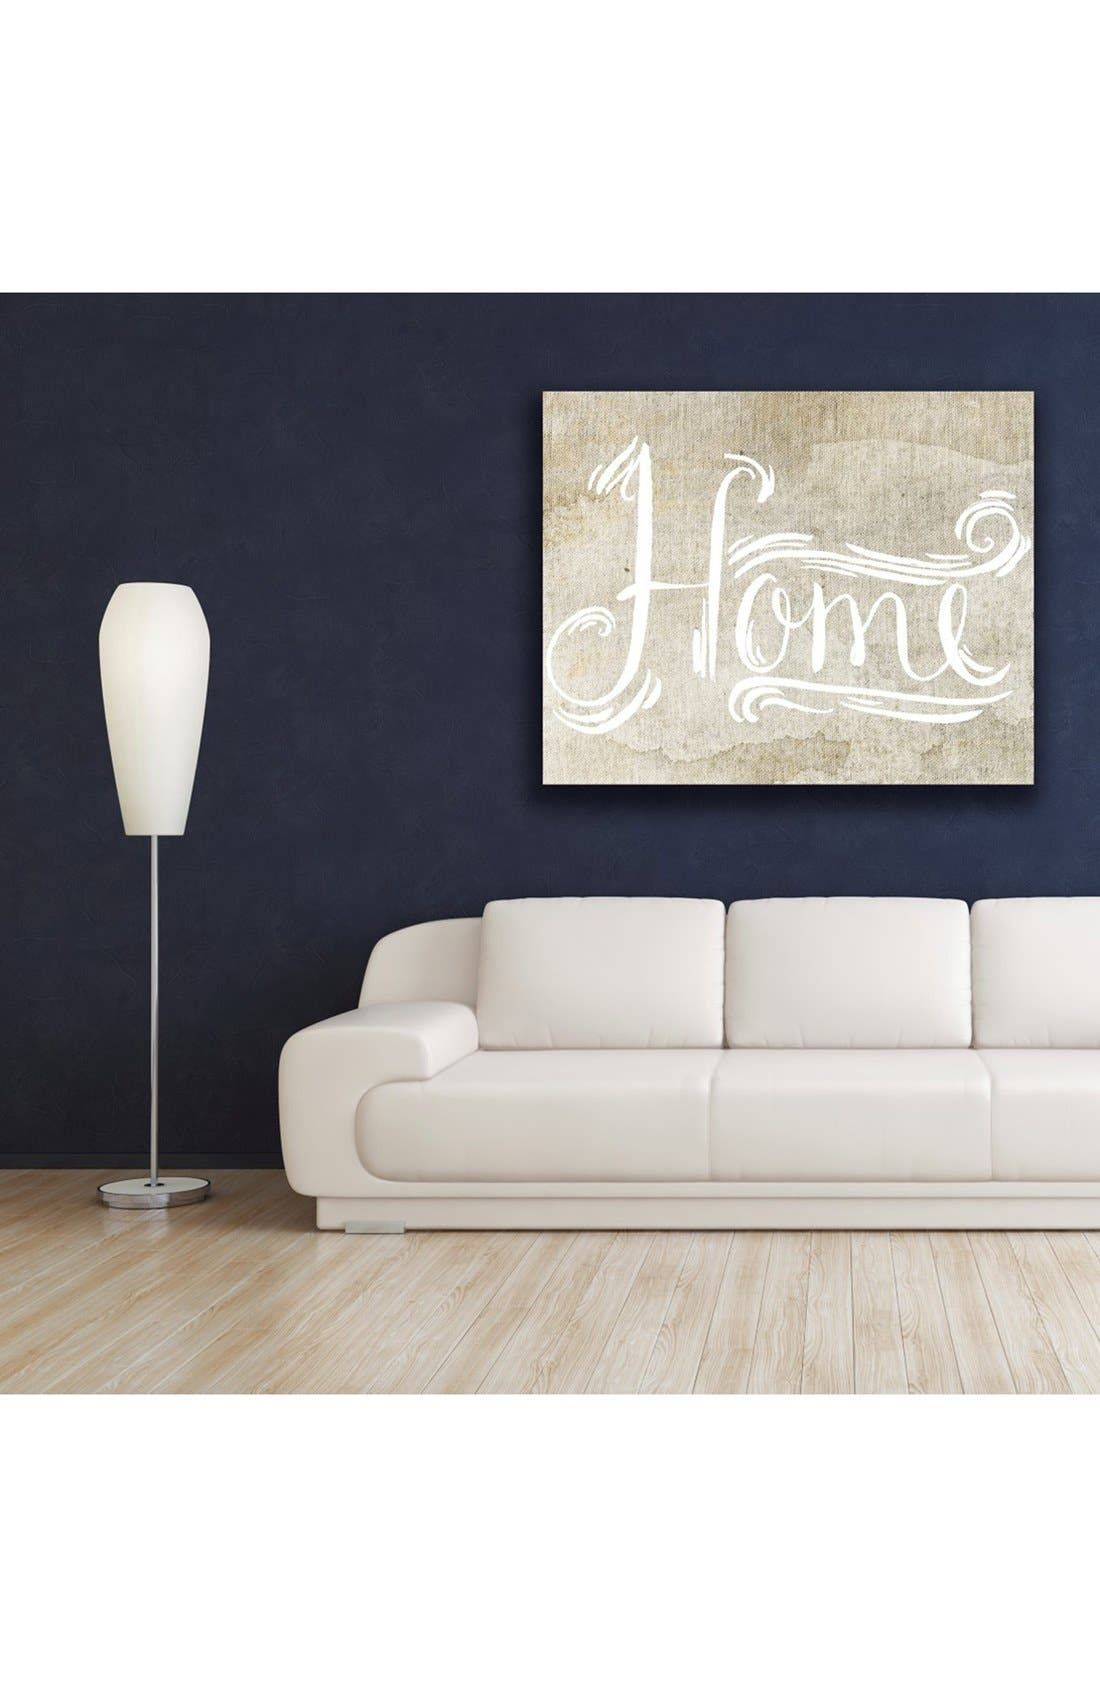 'Home Sweet Home' Hand Stretched Canvas Wall Art,                             Alternate thumbnail 2, color,                             250